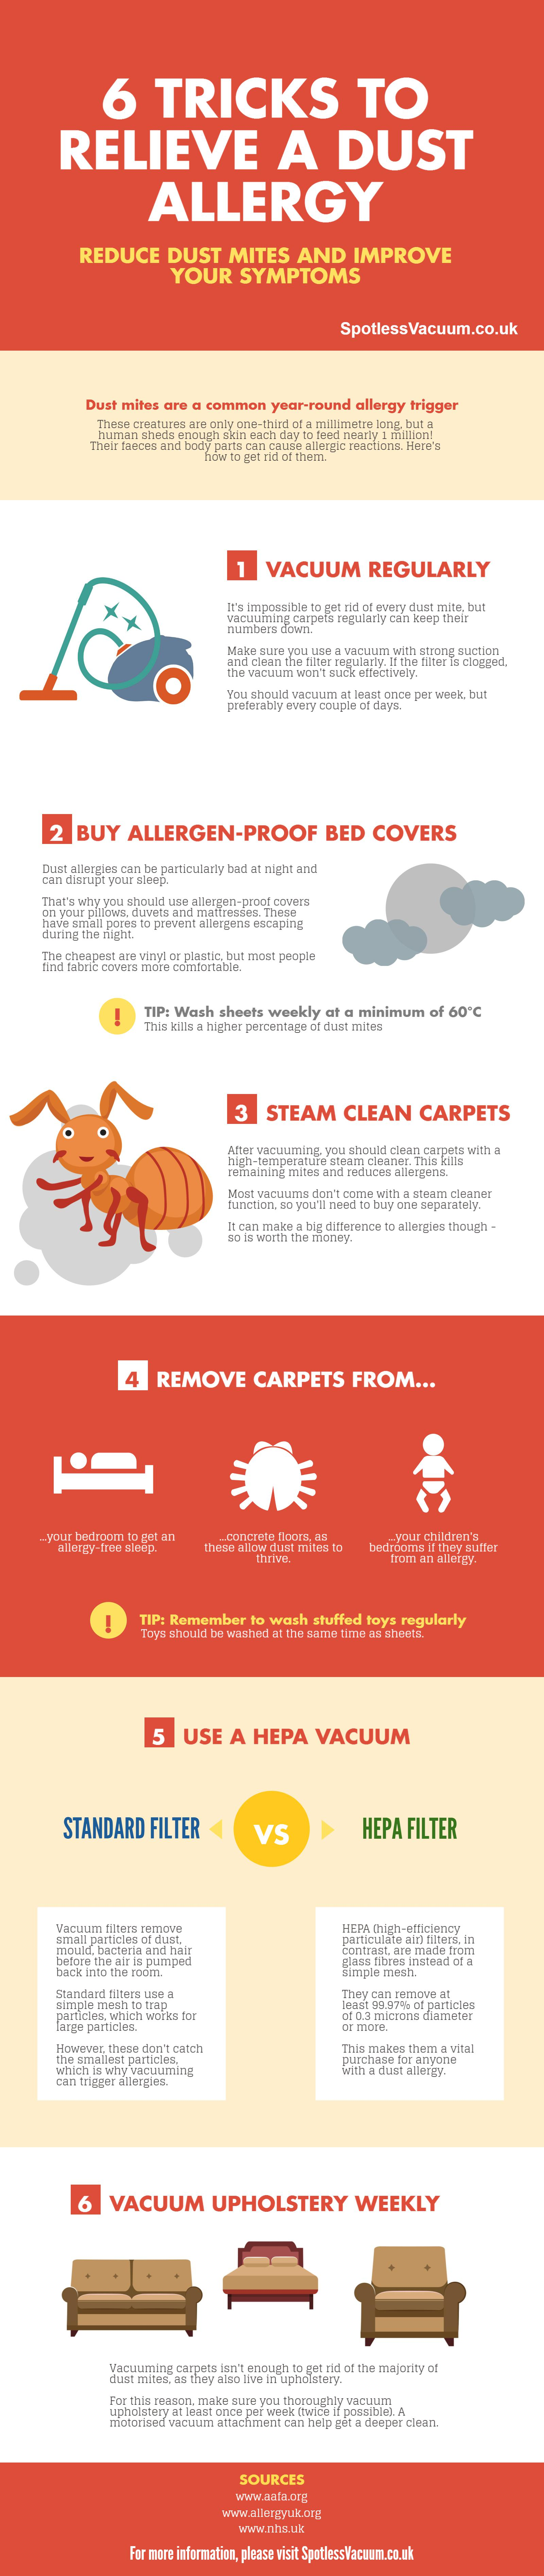 Infographic explaining how to relieve a dust mite allergy